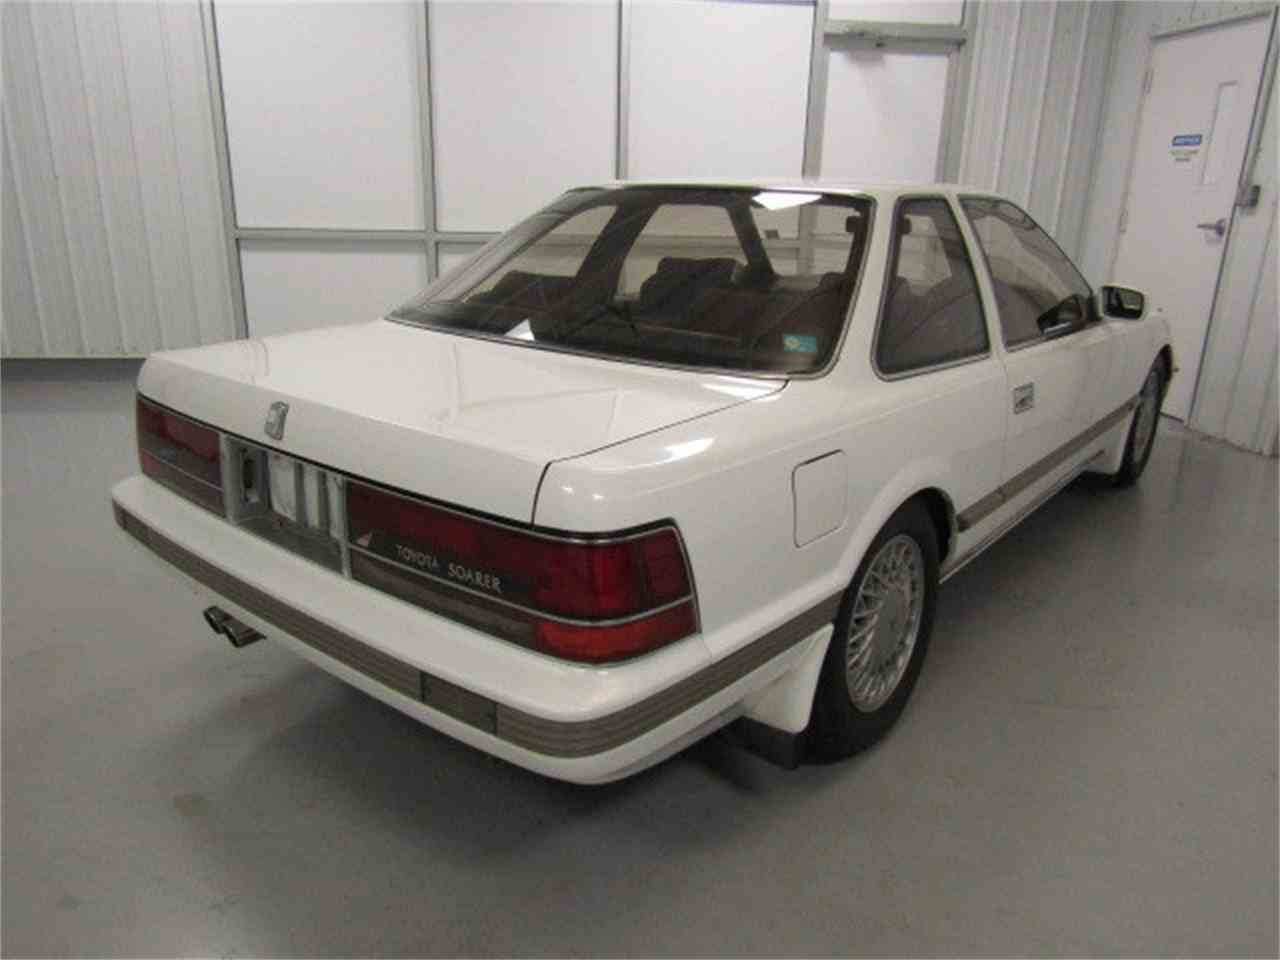 Large Picture of 1987 Soarer located in Christiansburg Virginia - $7,999.00 - JLB2